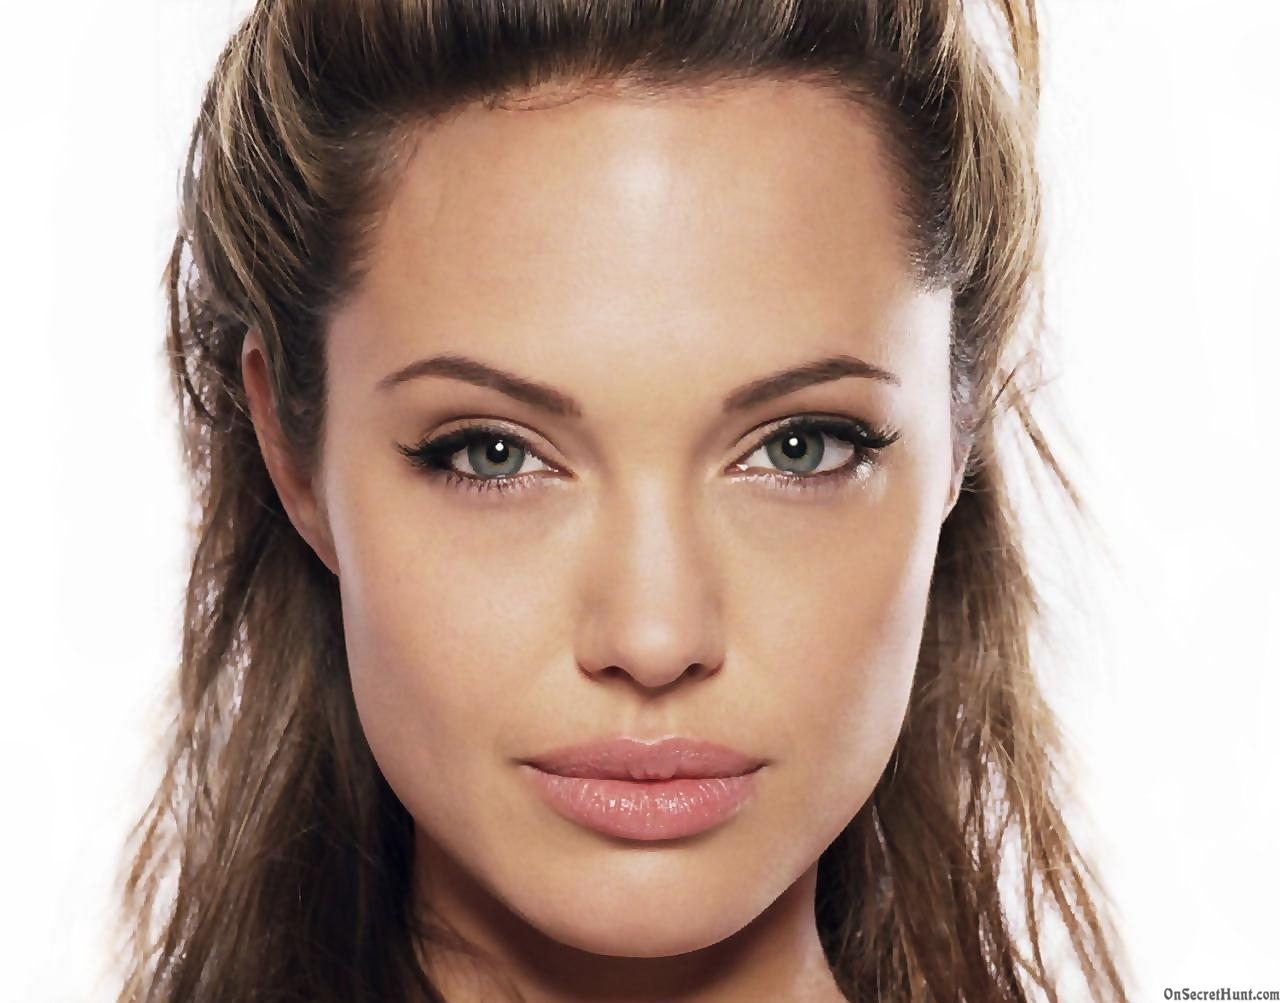 American movie star Angelina Jolie expected in Sudan ... Angelina Jolie